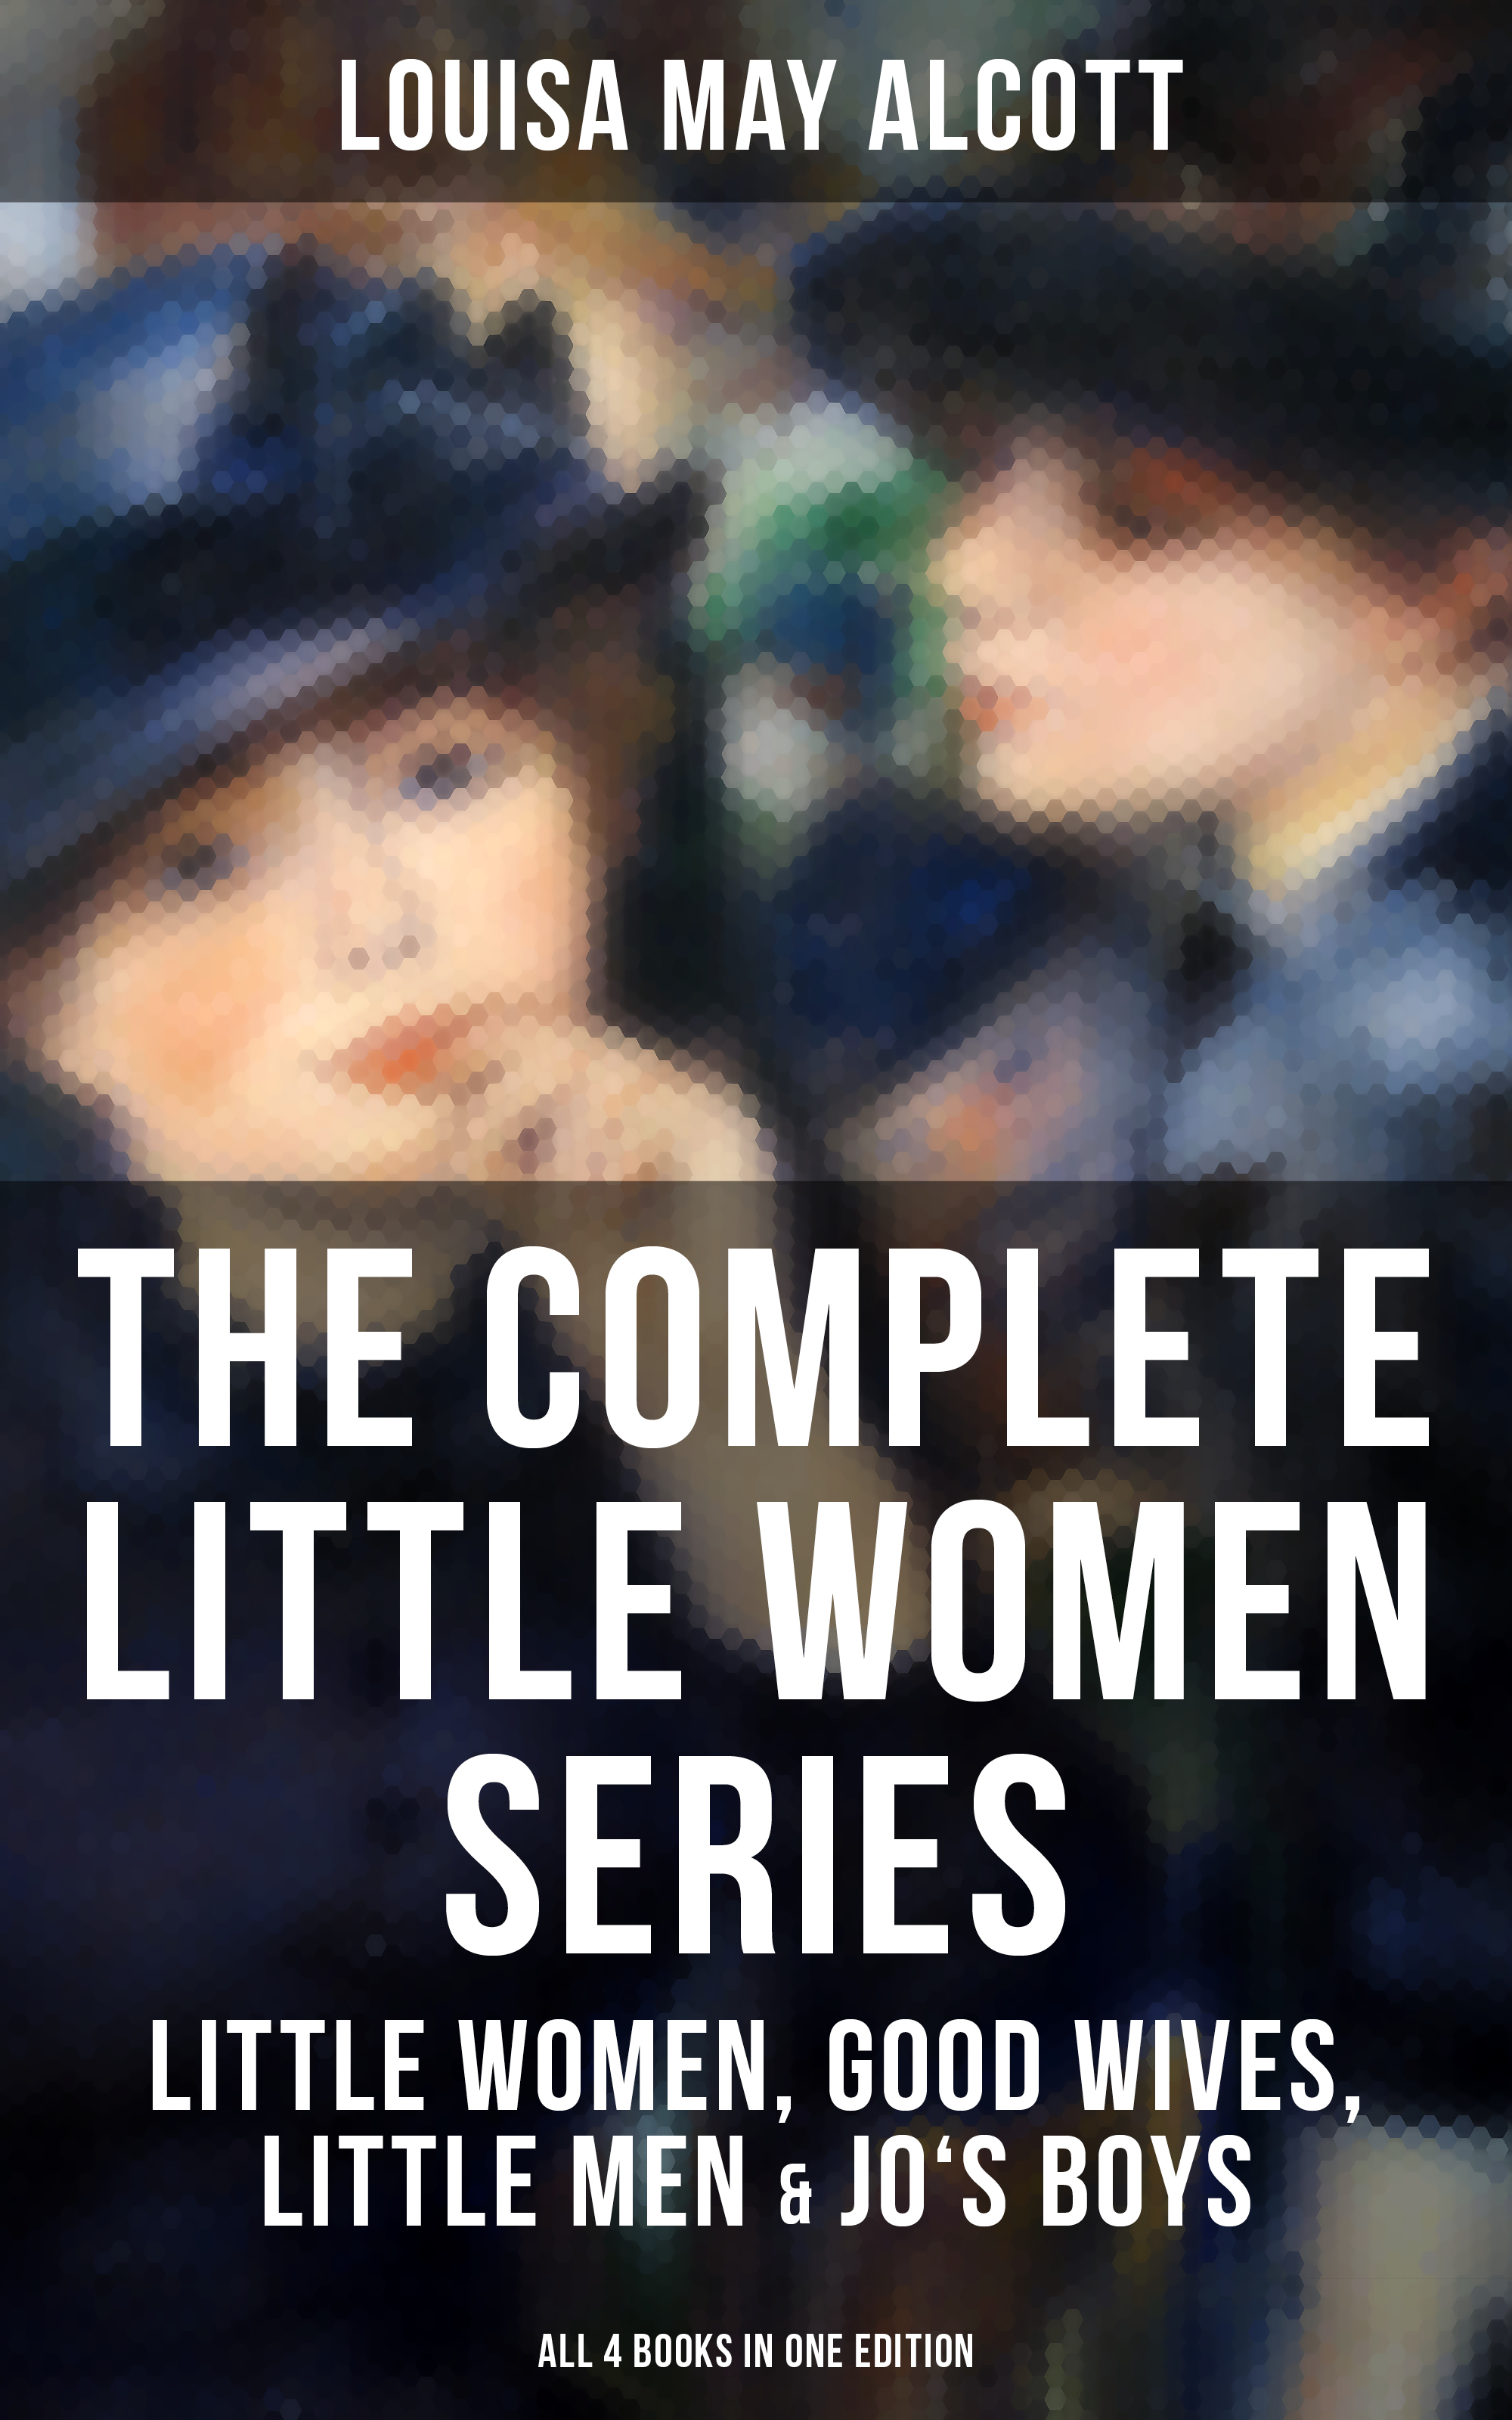 Louisa May Alcott THE COMPLETE LITTLE WOMEN SERIES: Little Women, Good Wives, Little Men & Jo's Boys (All 4 Books in One Edition) little women cd